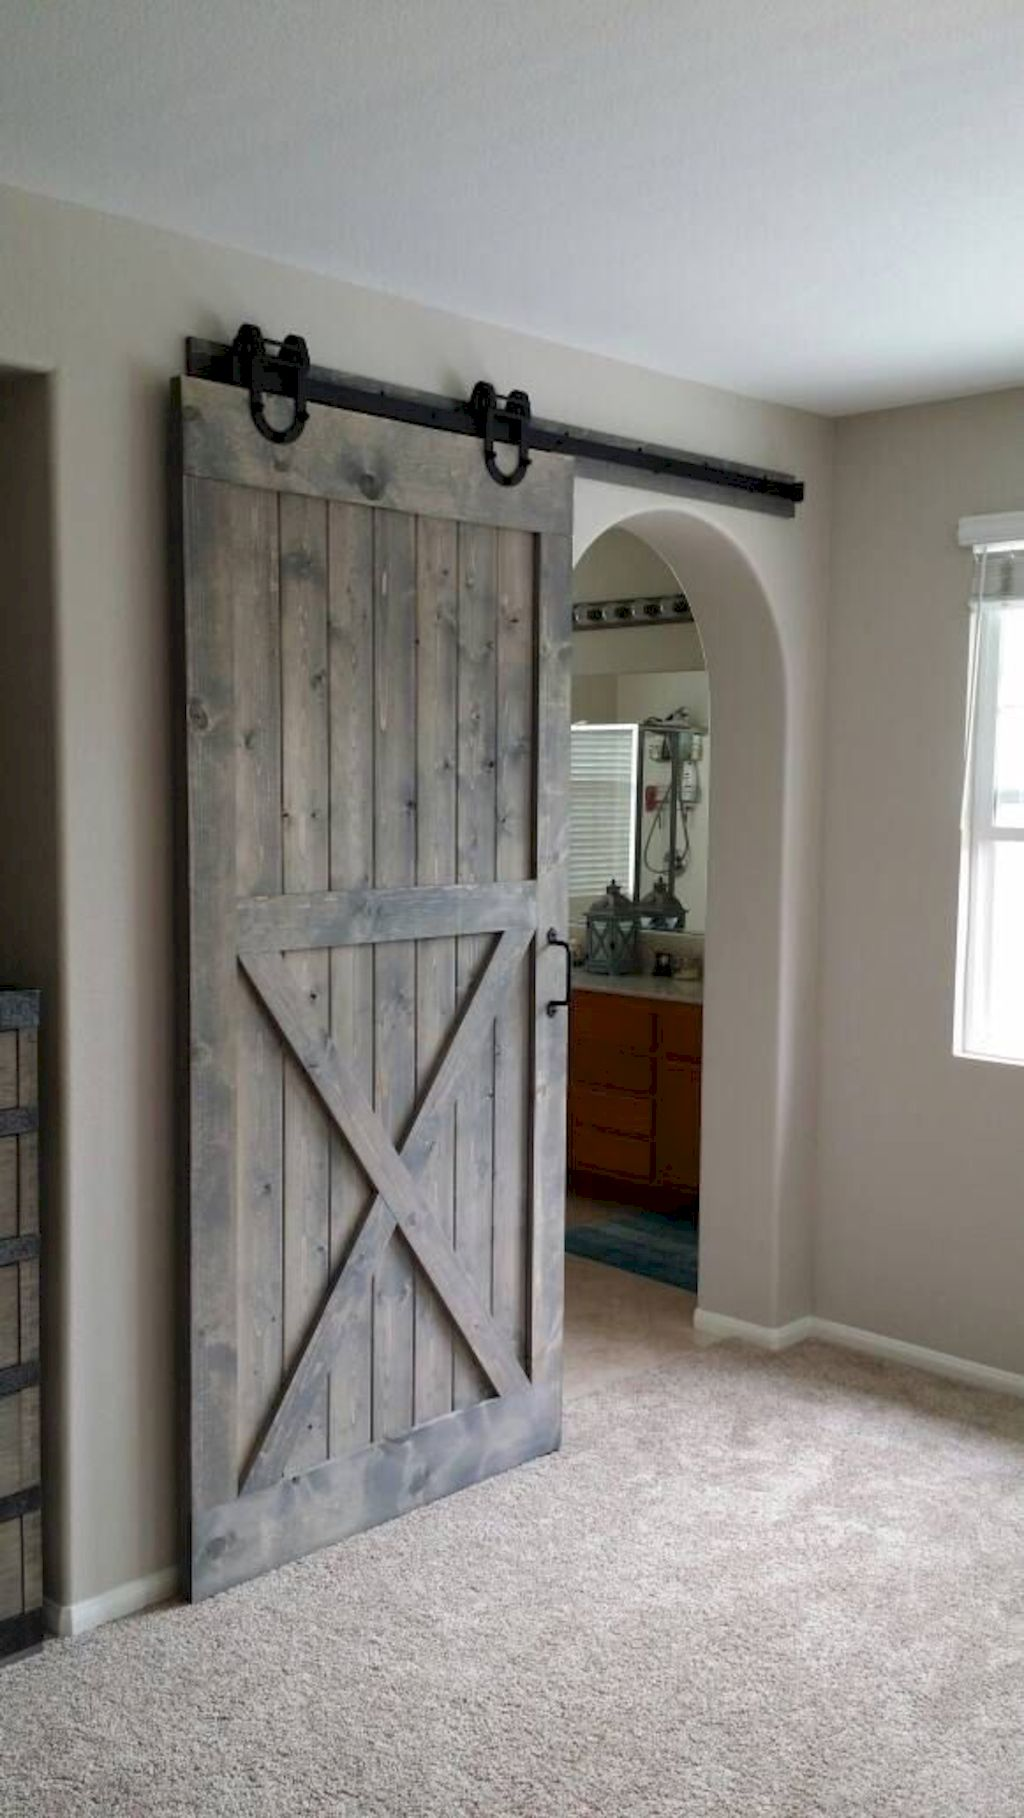 Barn style sliding doors applied as bedroom doors showing a rustic accent in the modern country homes Image 27